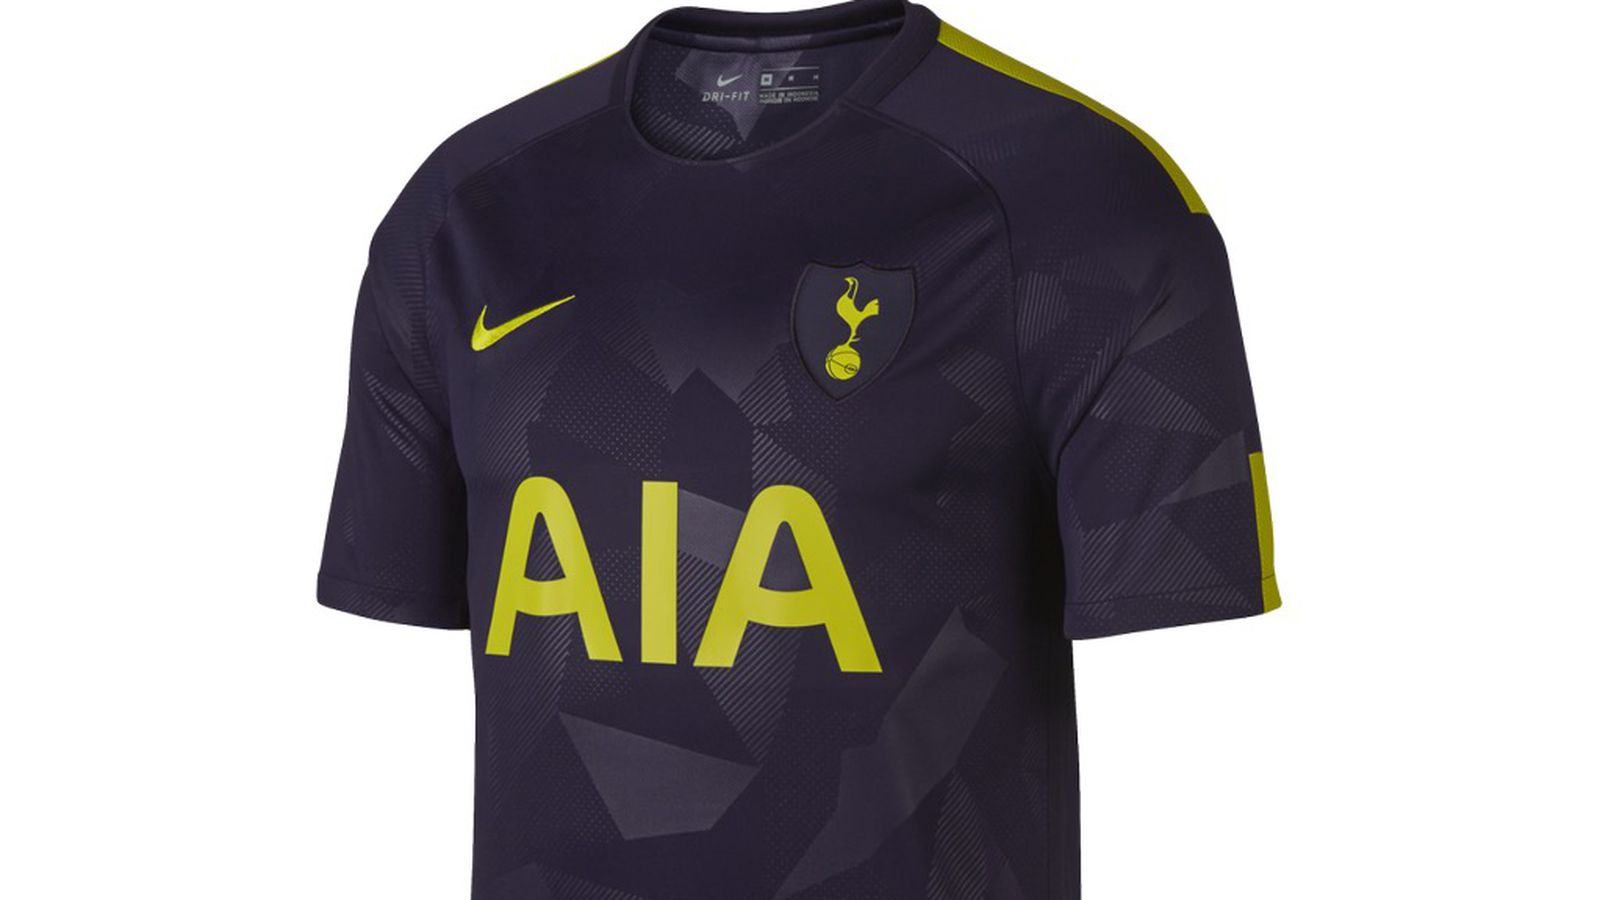 new style 71f46 eb3f7 Another Tottenham third kit has leaked, and this one is ...